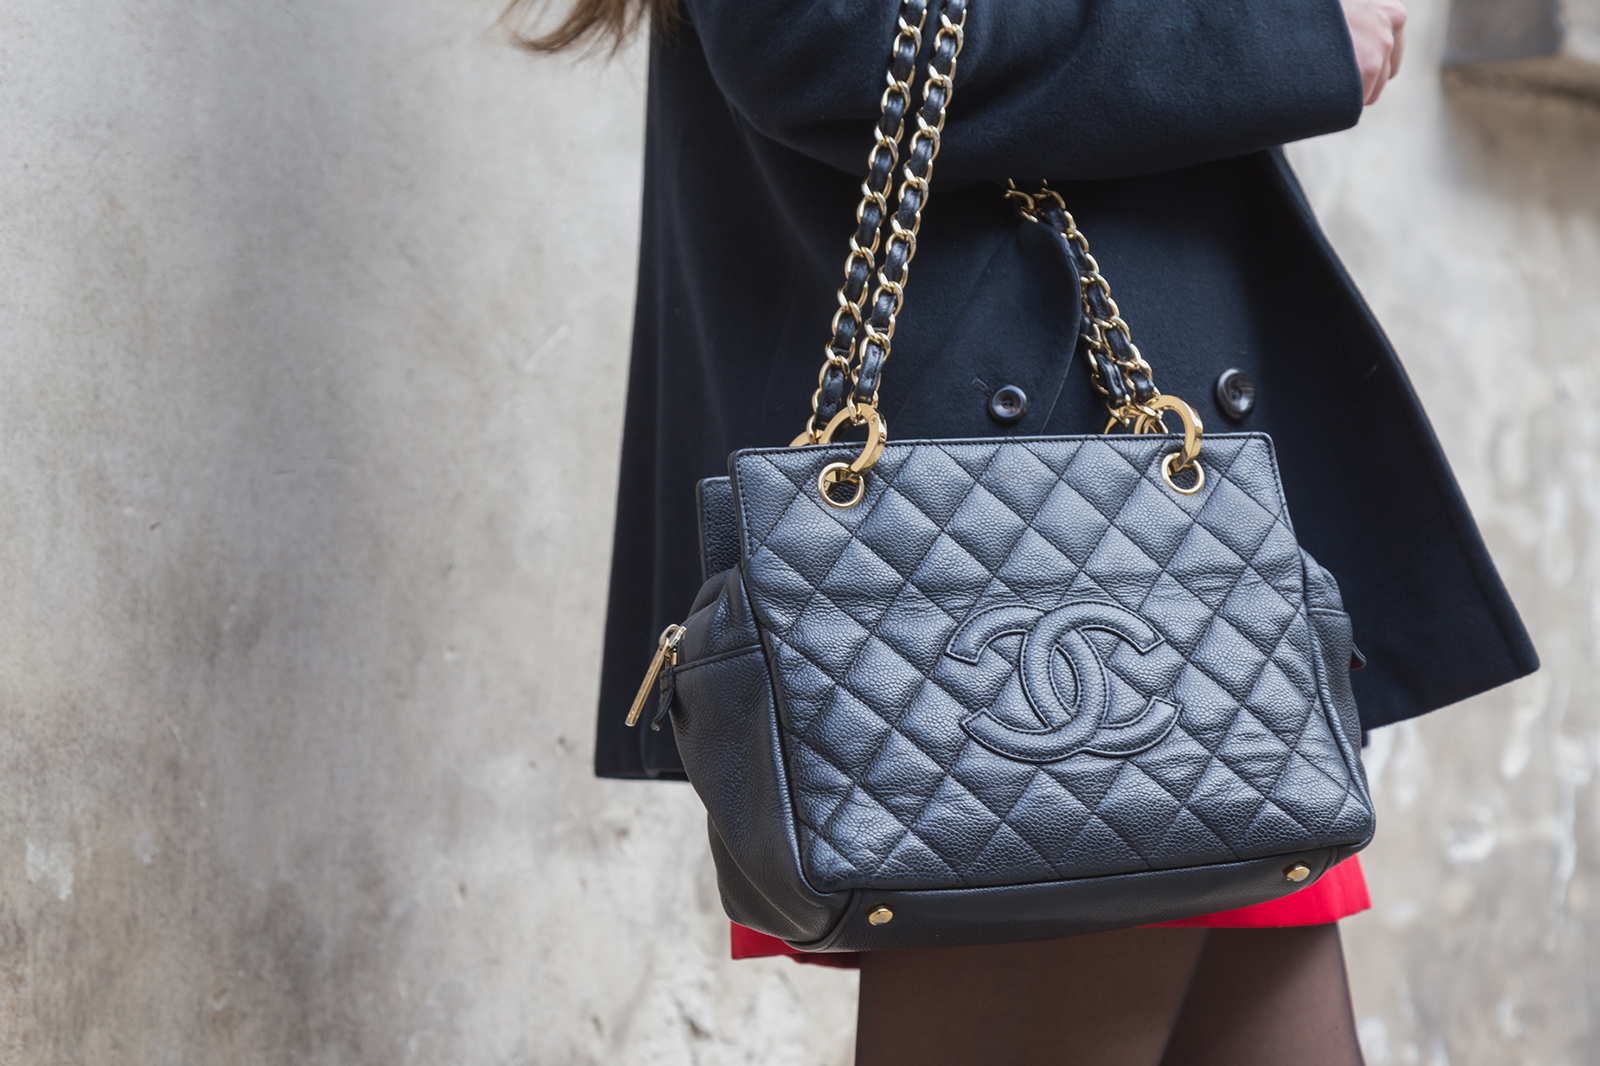 Chanel Purse Pricing Lovetoknow